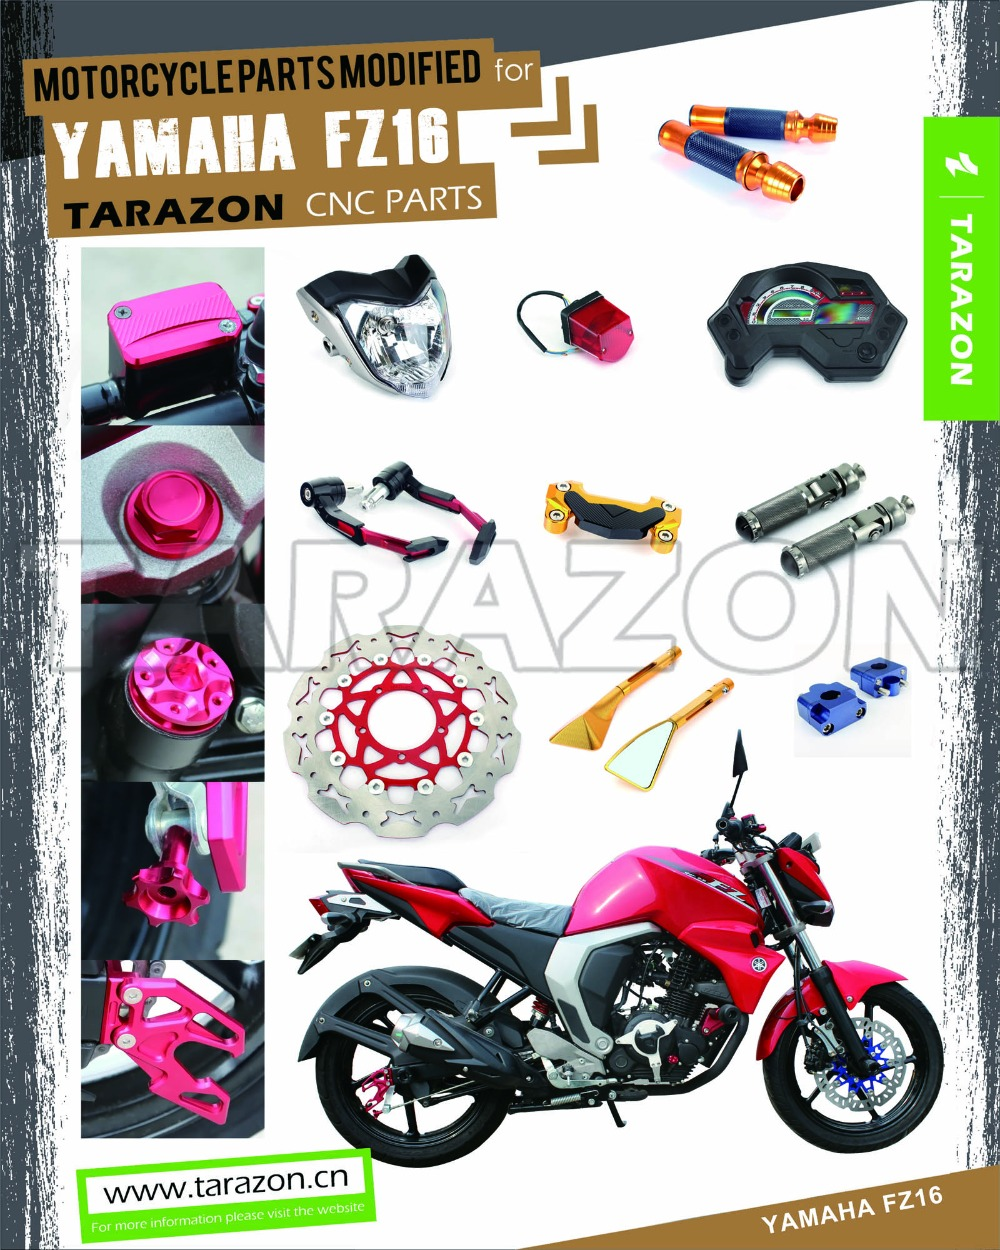 Tarazon Motorcycle Parts And Accessories For Yamaha Fz 16 - Buy Fz 16  Motorcycle Parts,Parts For Fz 16,Parts For Yamaha Fz 16 Product on  Alibaba com